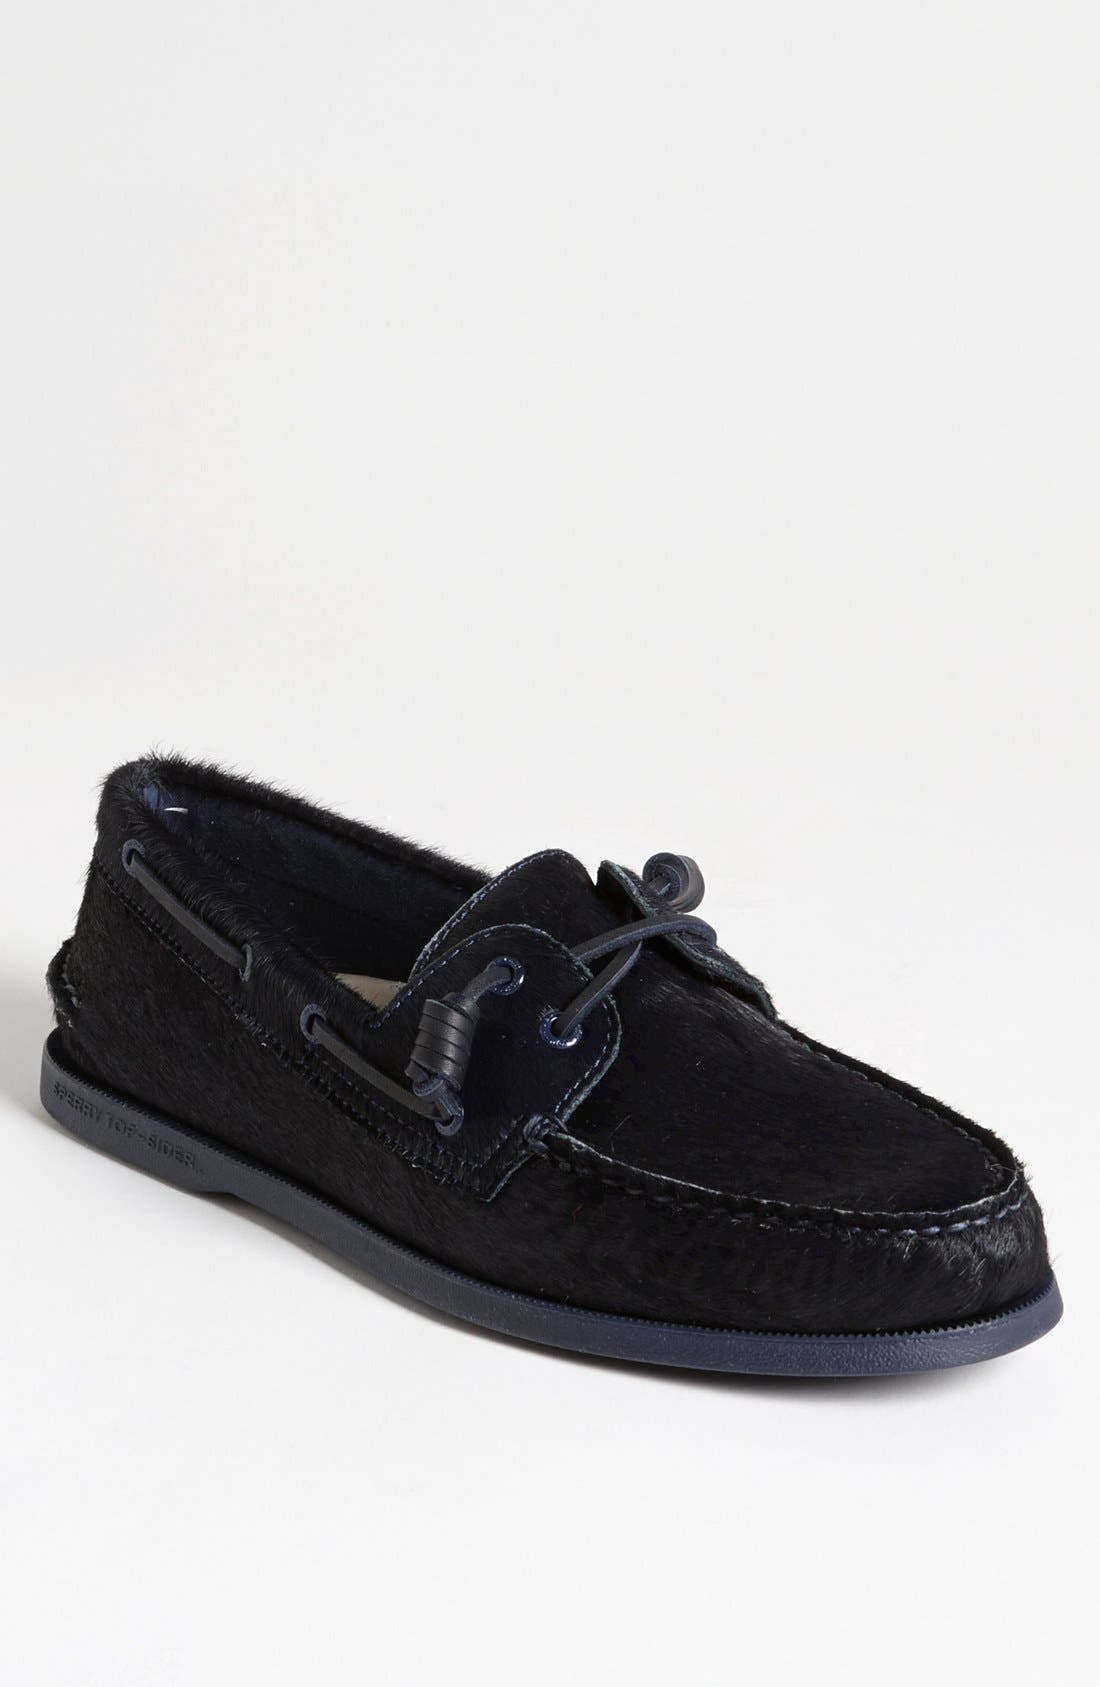 Main Image - Sperry Top-Sider® for Jeffrey 'Authentic Original' Calf Hair Boat Shoe